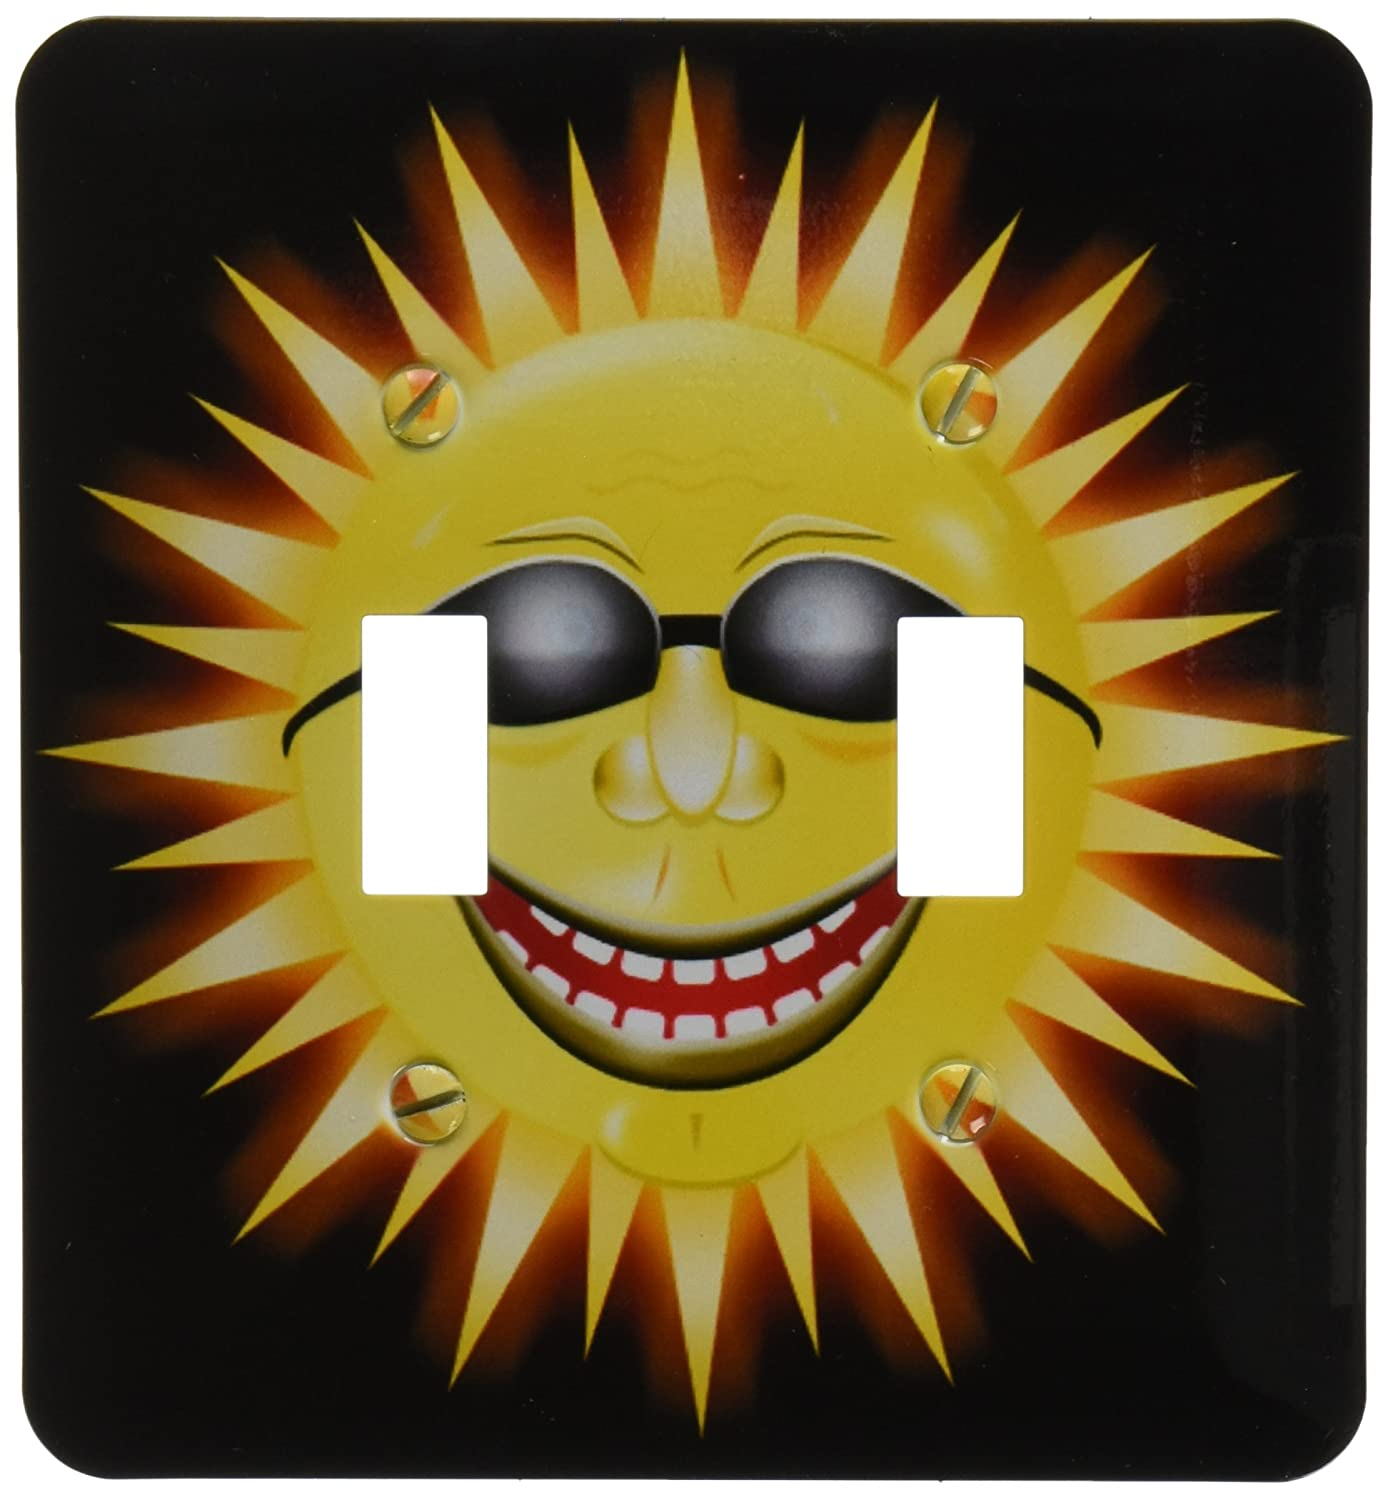 3drose Lsp 18159 2 Smiling Sunshine A Happy Sunny Face Wearing Sunglasses With A Smile Double Toggle Switch Amazon In Home Kitchen